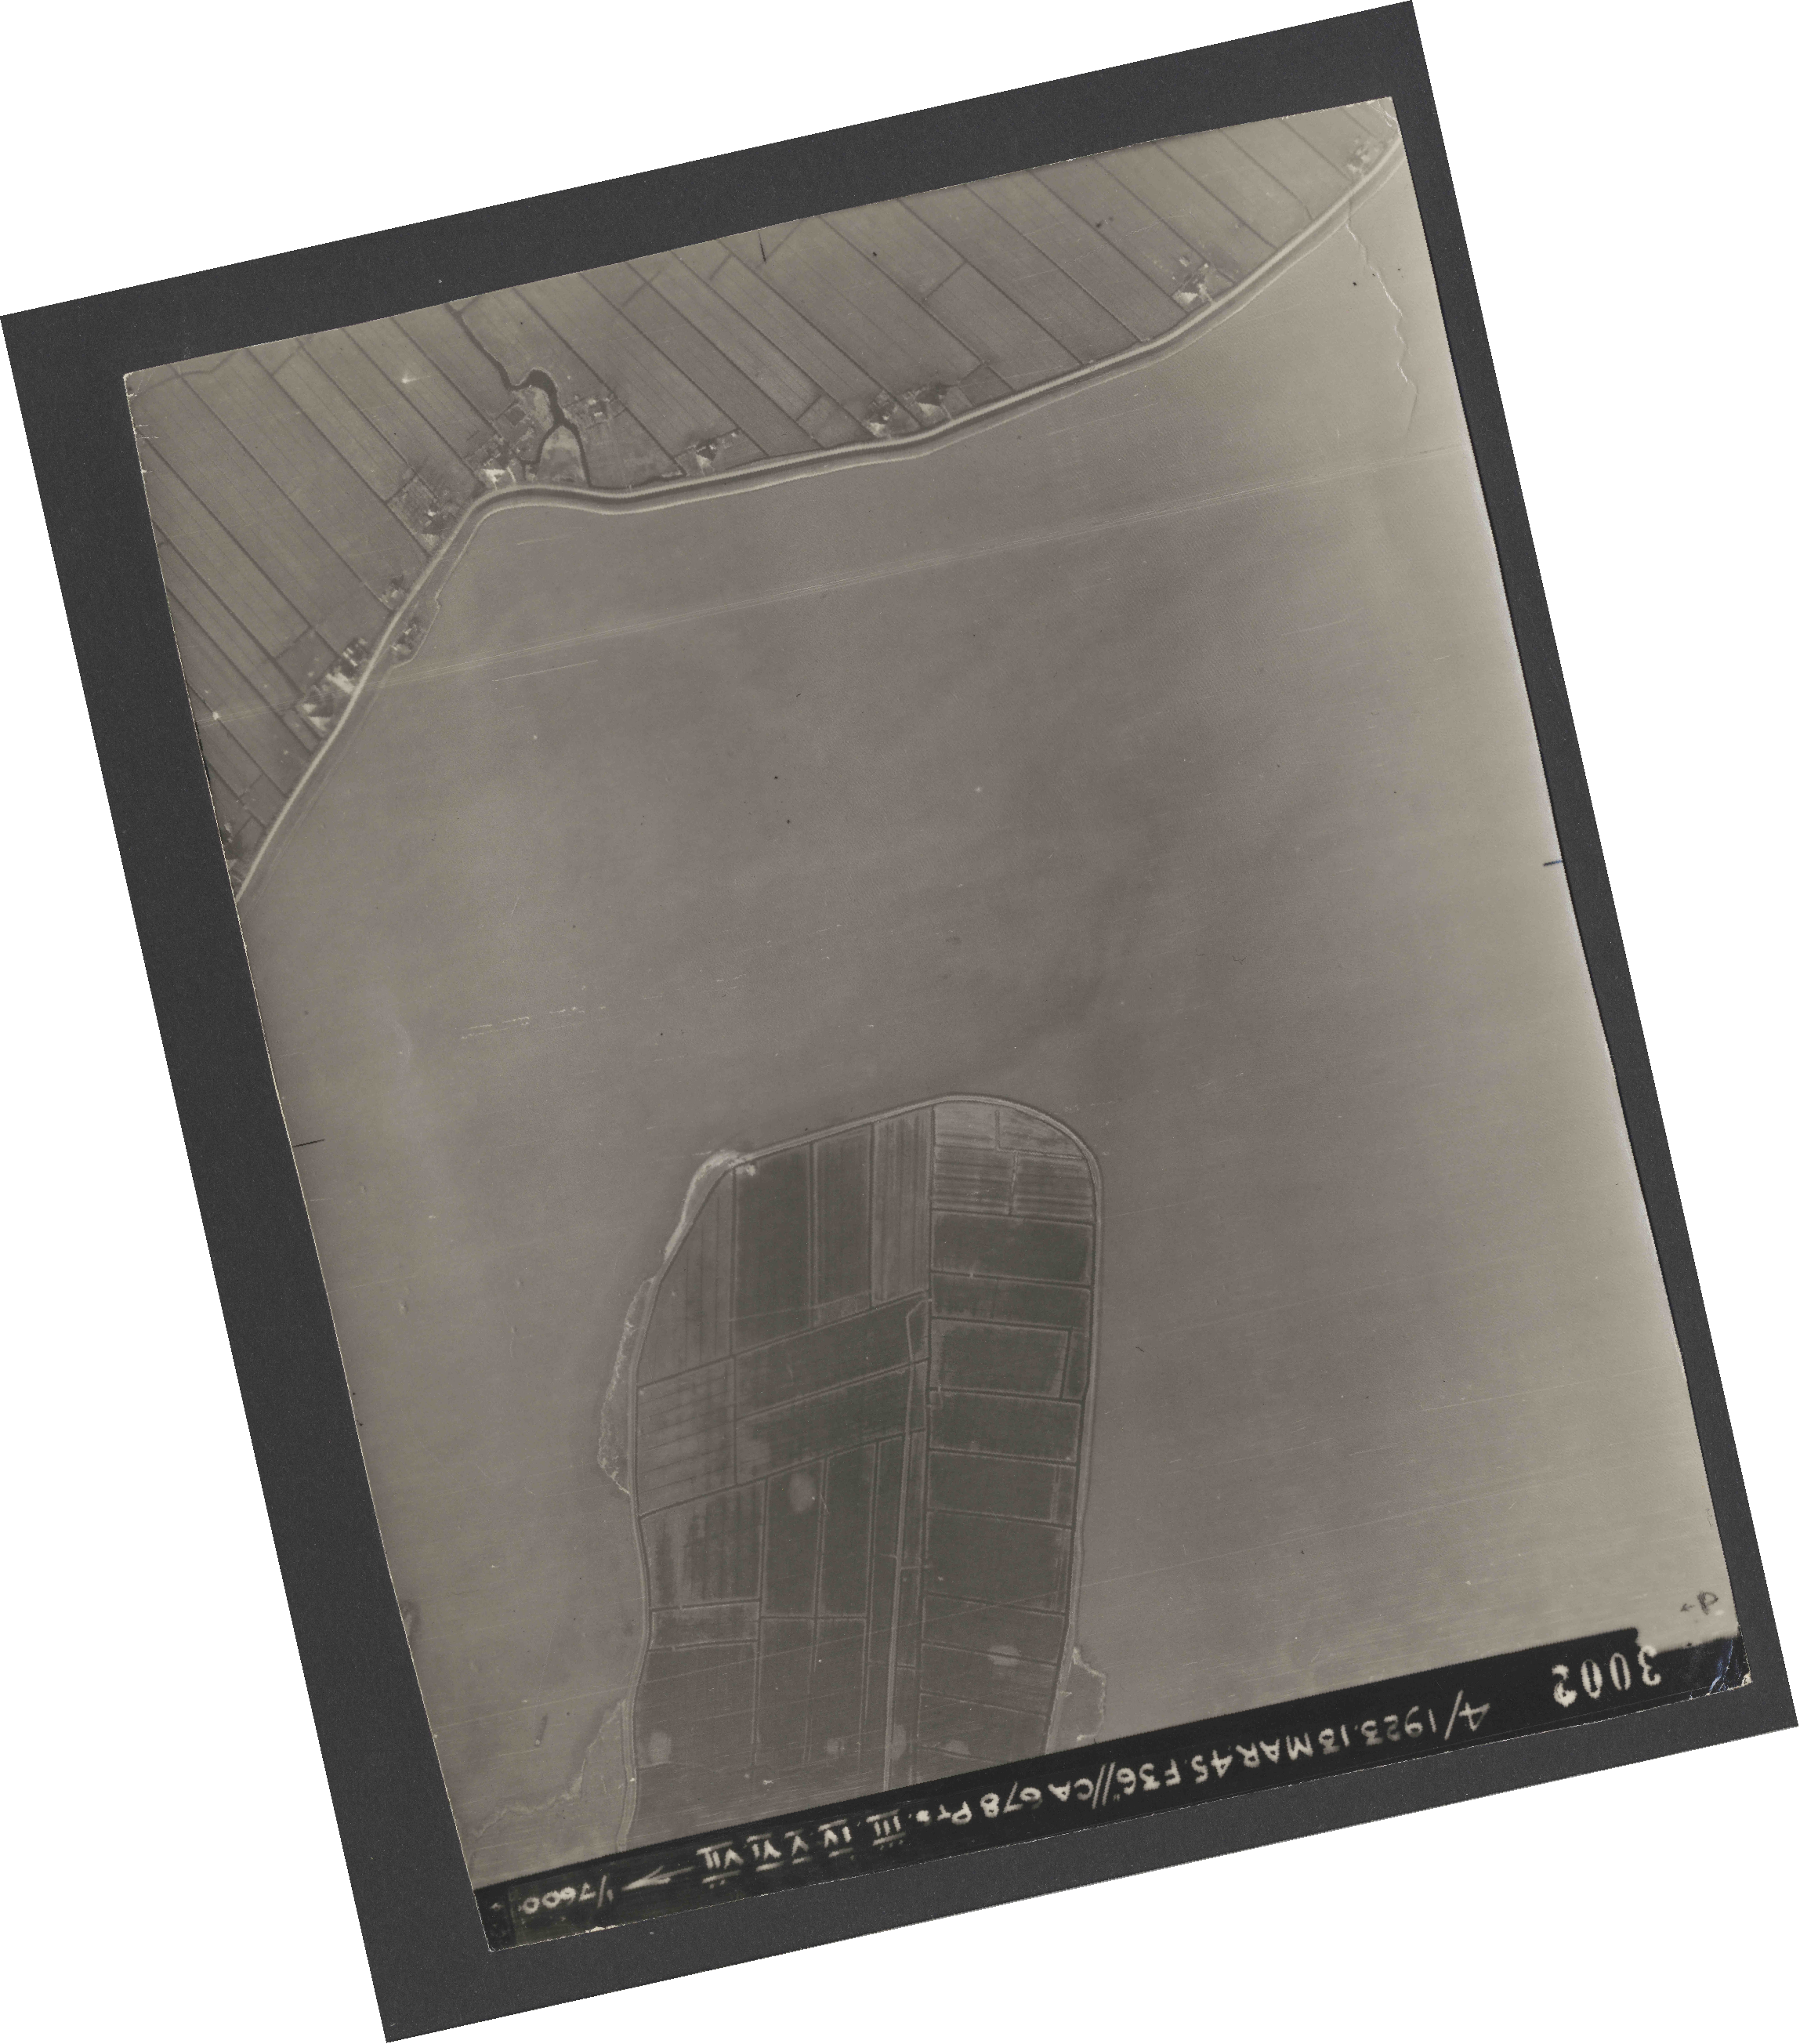 Collection RAF aerial photos 1940-1945 - flight 245, run 08, photo 3002